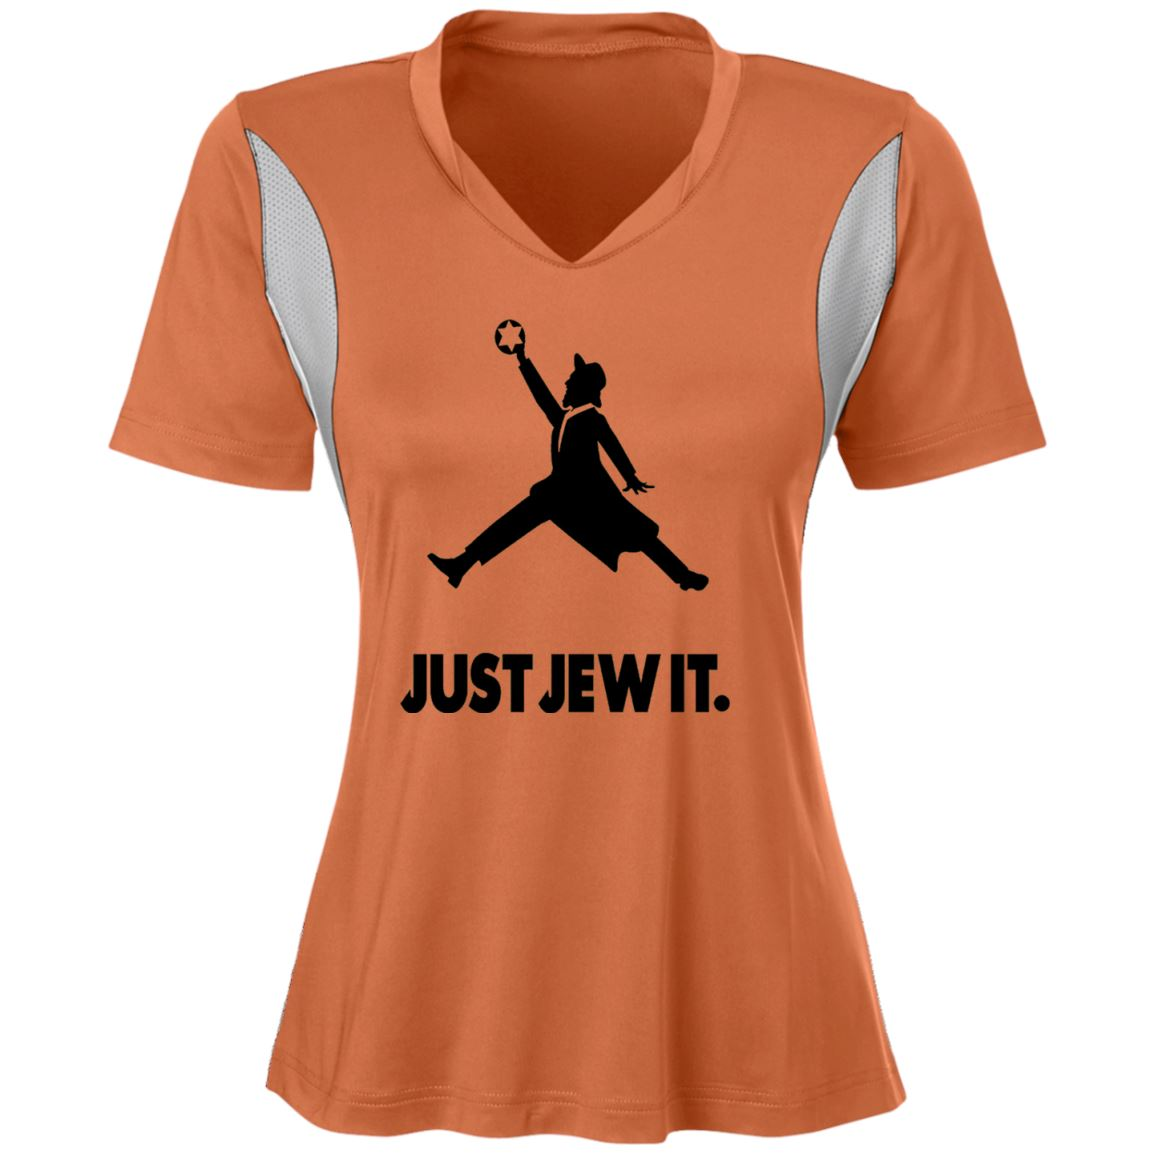 Jewish Ladies' All Sport Jersey Jerseys White X-Small